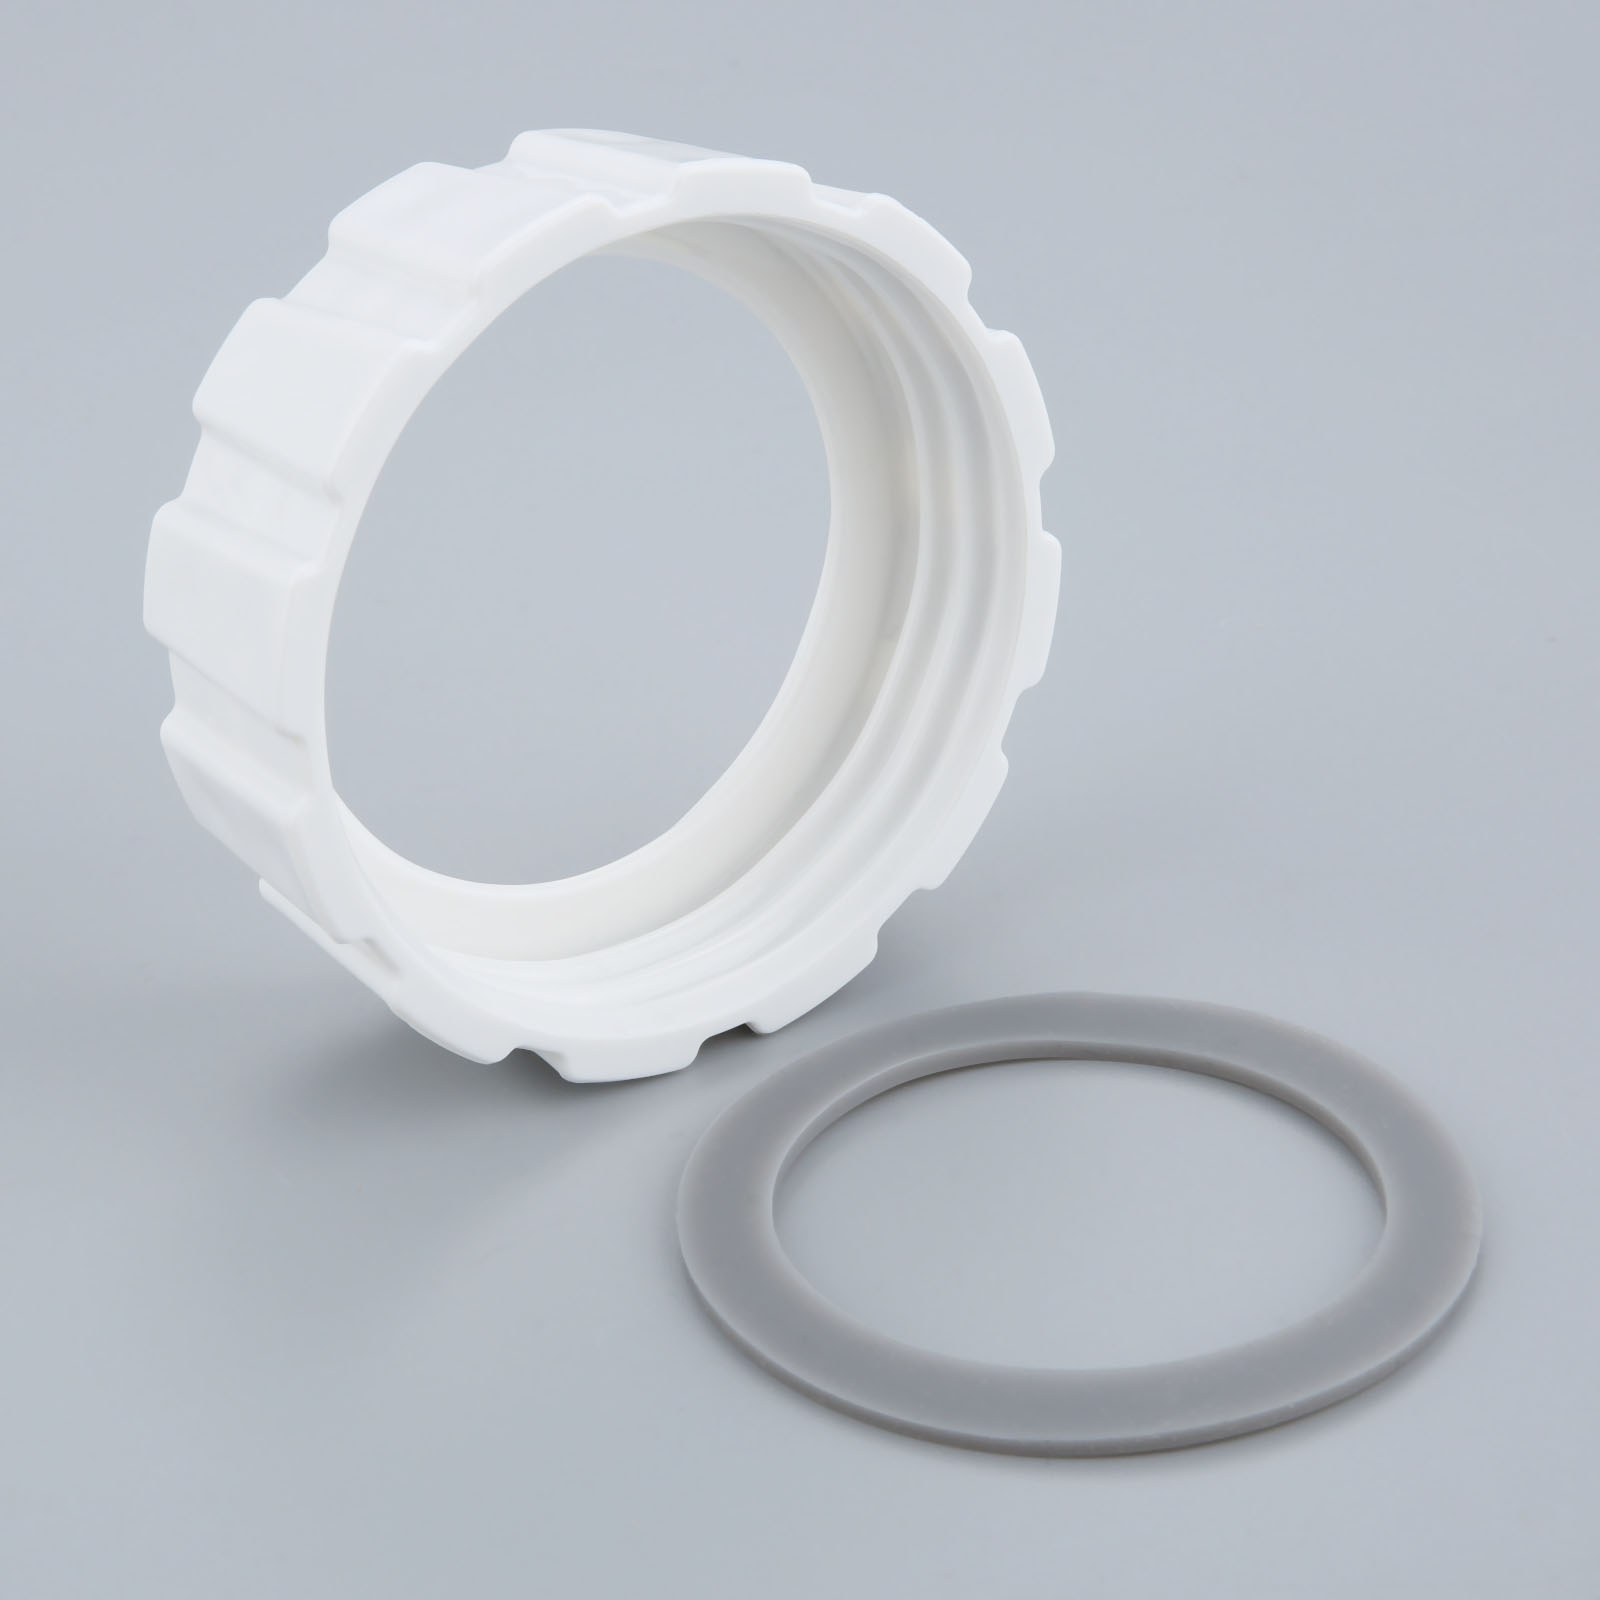 Replacement Bottom Jar Base Cap Sealing Gasket Fit For Hamilton Beach Blender White